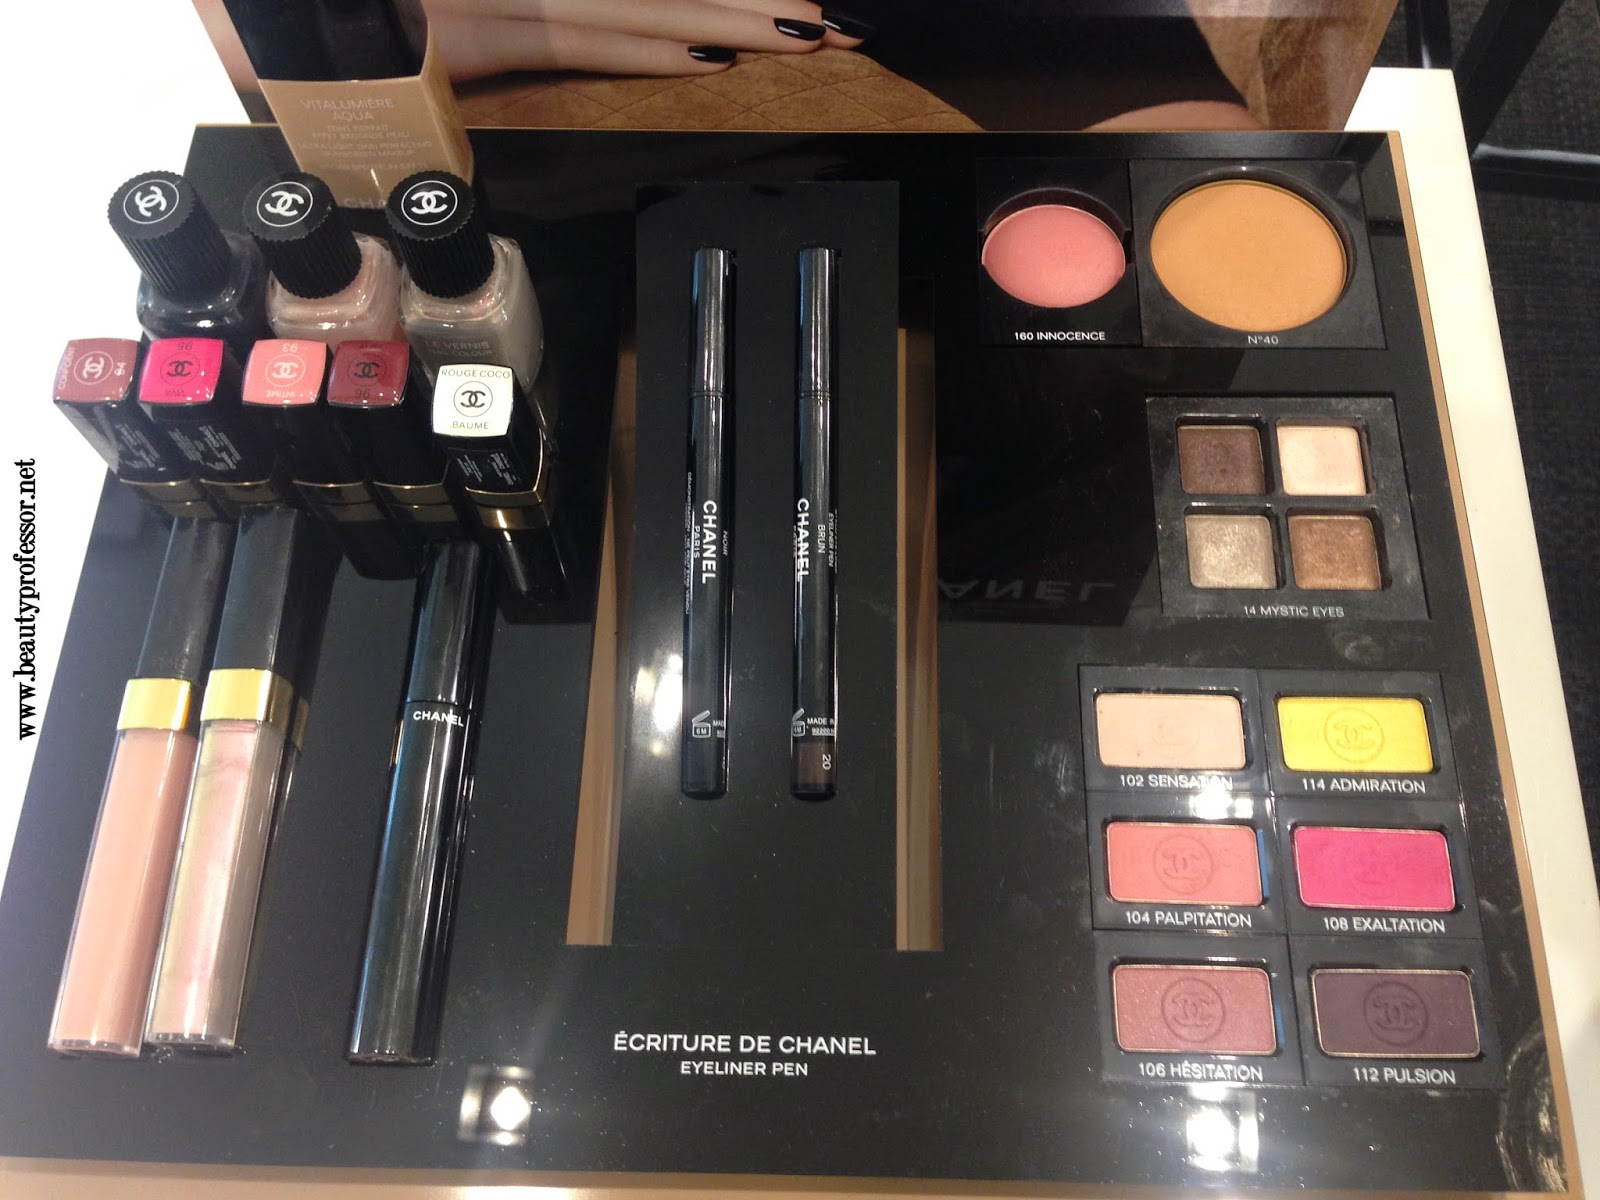 Chanel fall 2014 makeup collection swatches